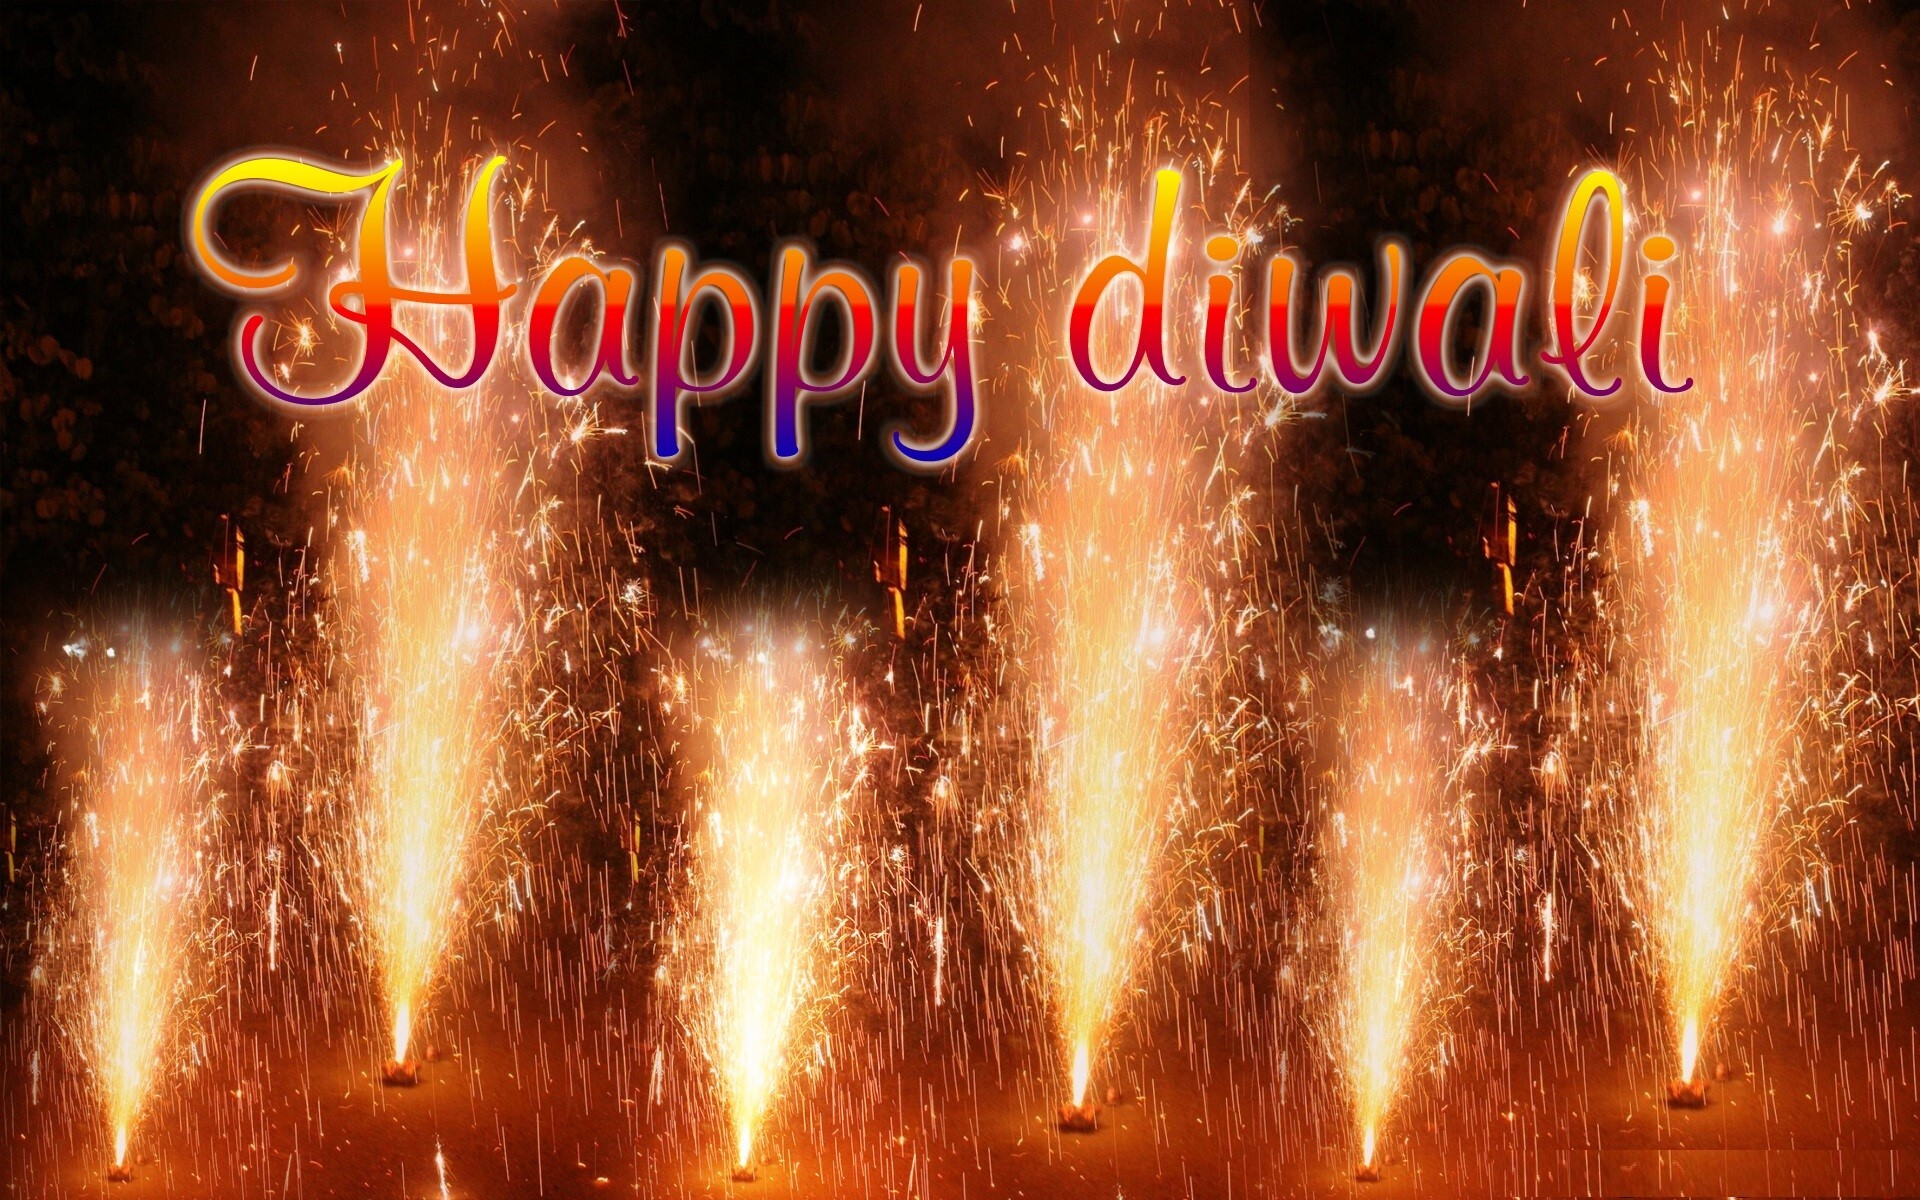 Wallpaper download diwali - Crackers Wallpapers